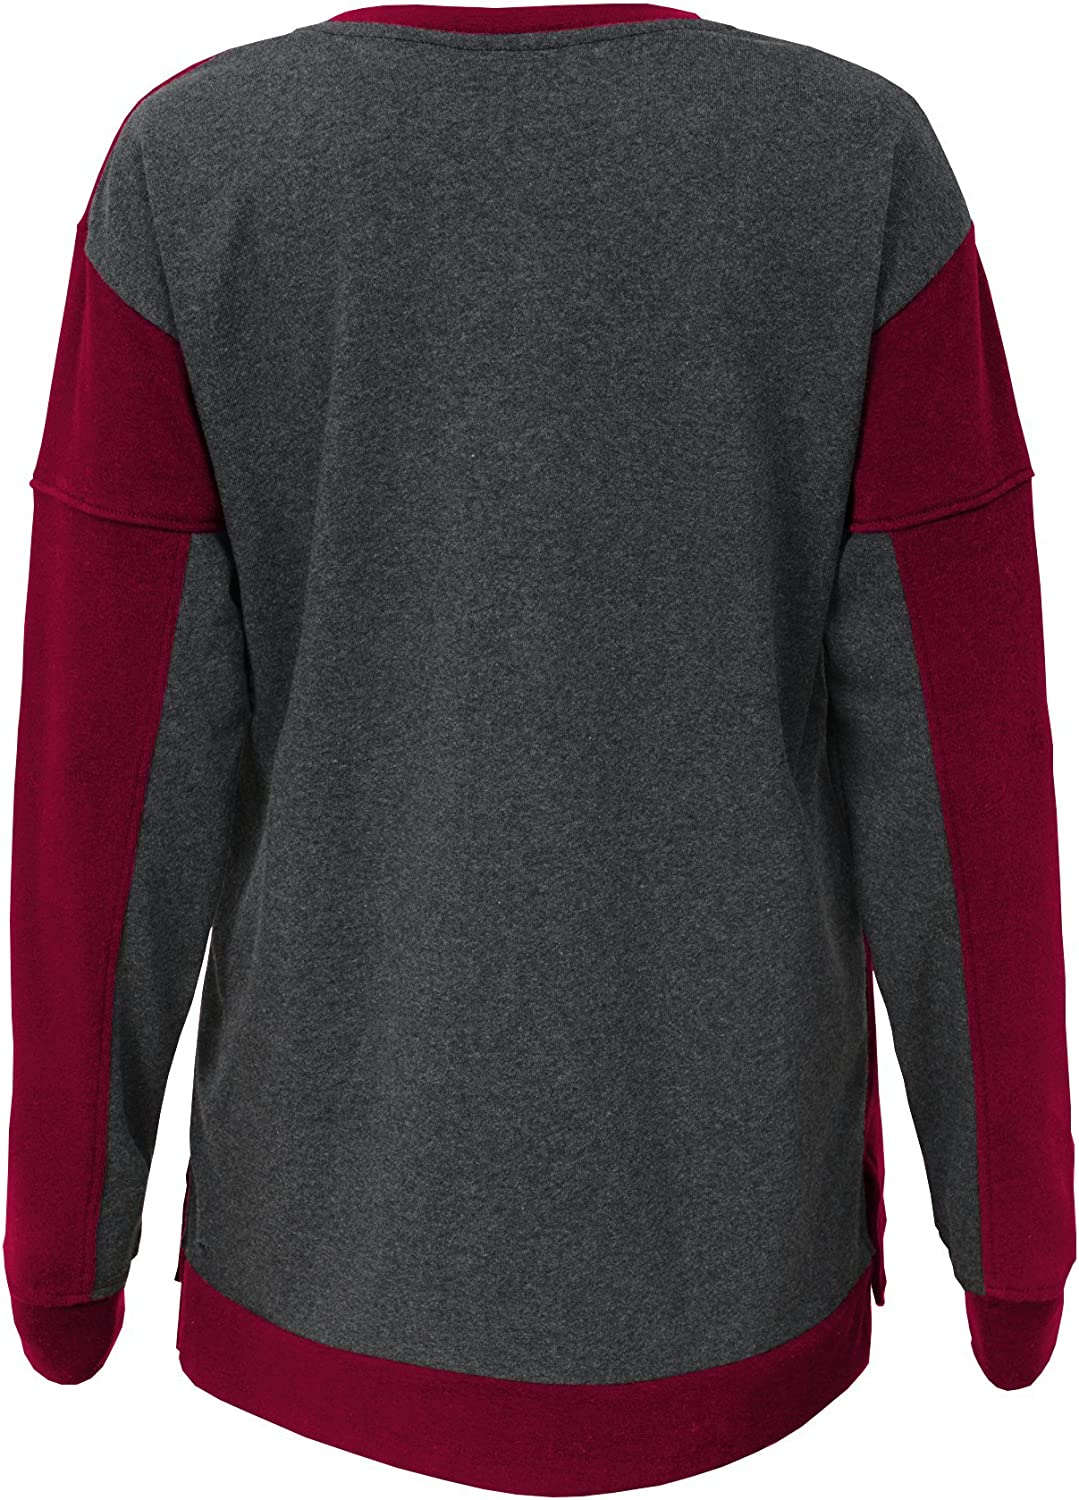 Outerstuff NFL Girls in The Mix Long Sleeve Crew Neck Top